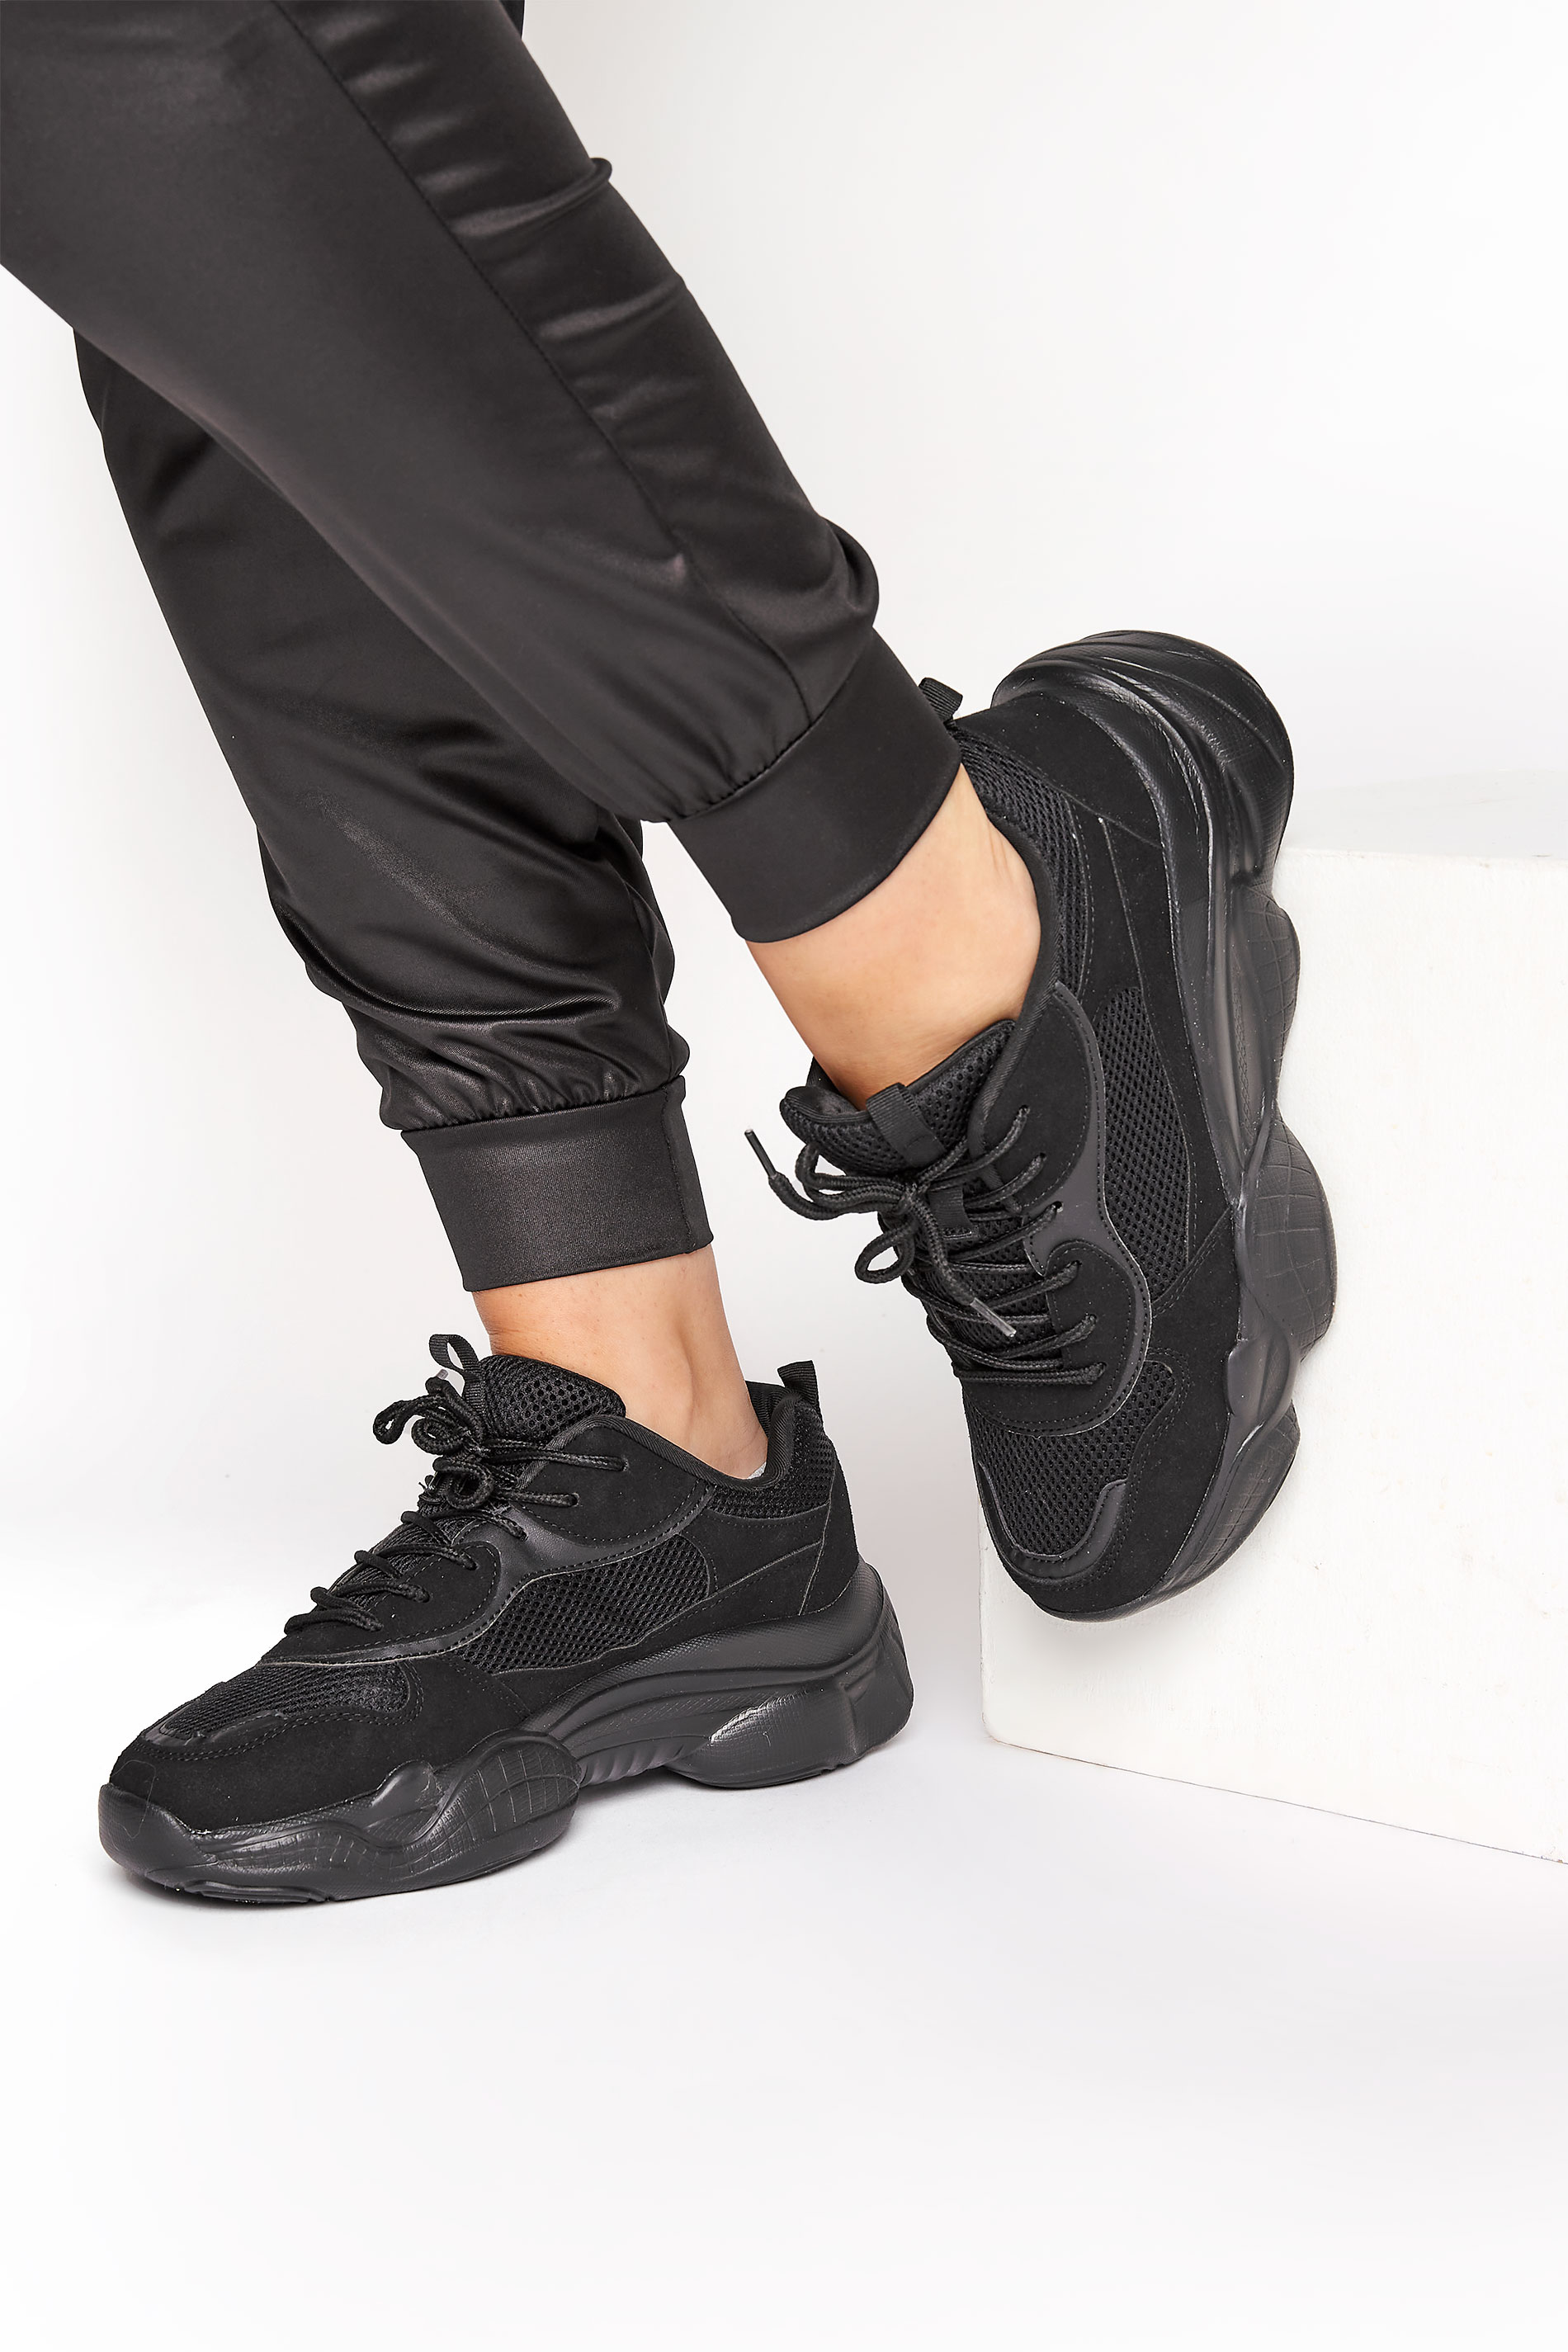 LIMITED COLLECTION Black Mesh Lace Up Chunky Trainers In Regular Fit